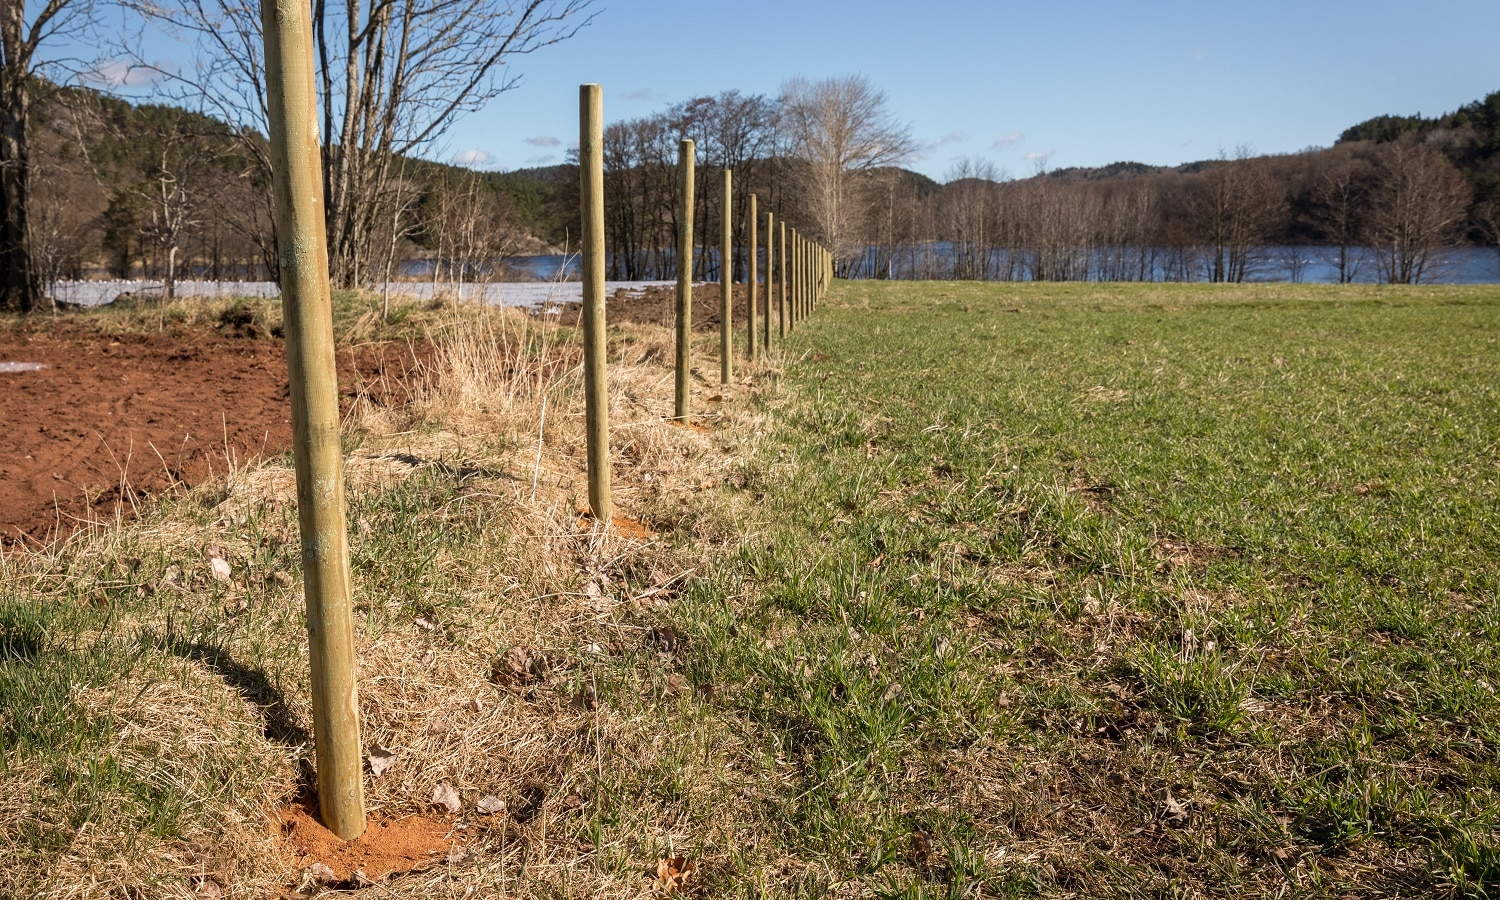 New fence in the making. Wooden fence posts placed on a straight line on a field. Sunny day in spring.